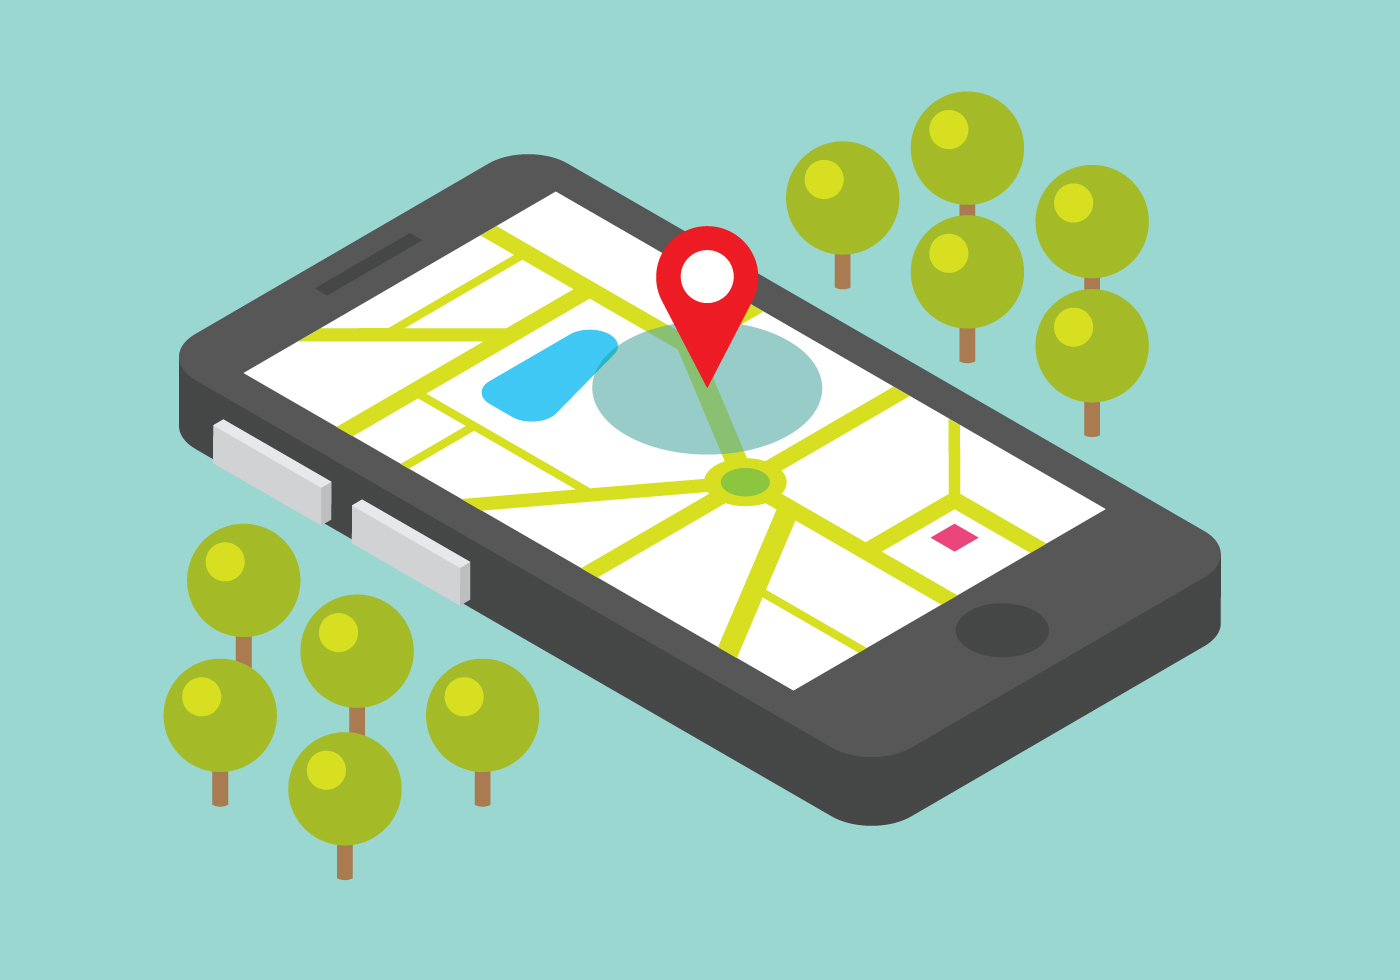 Location Position Icon Free Vector Graphic On Pixabay: Mobile Map With Location Sign